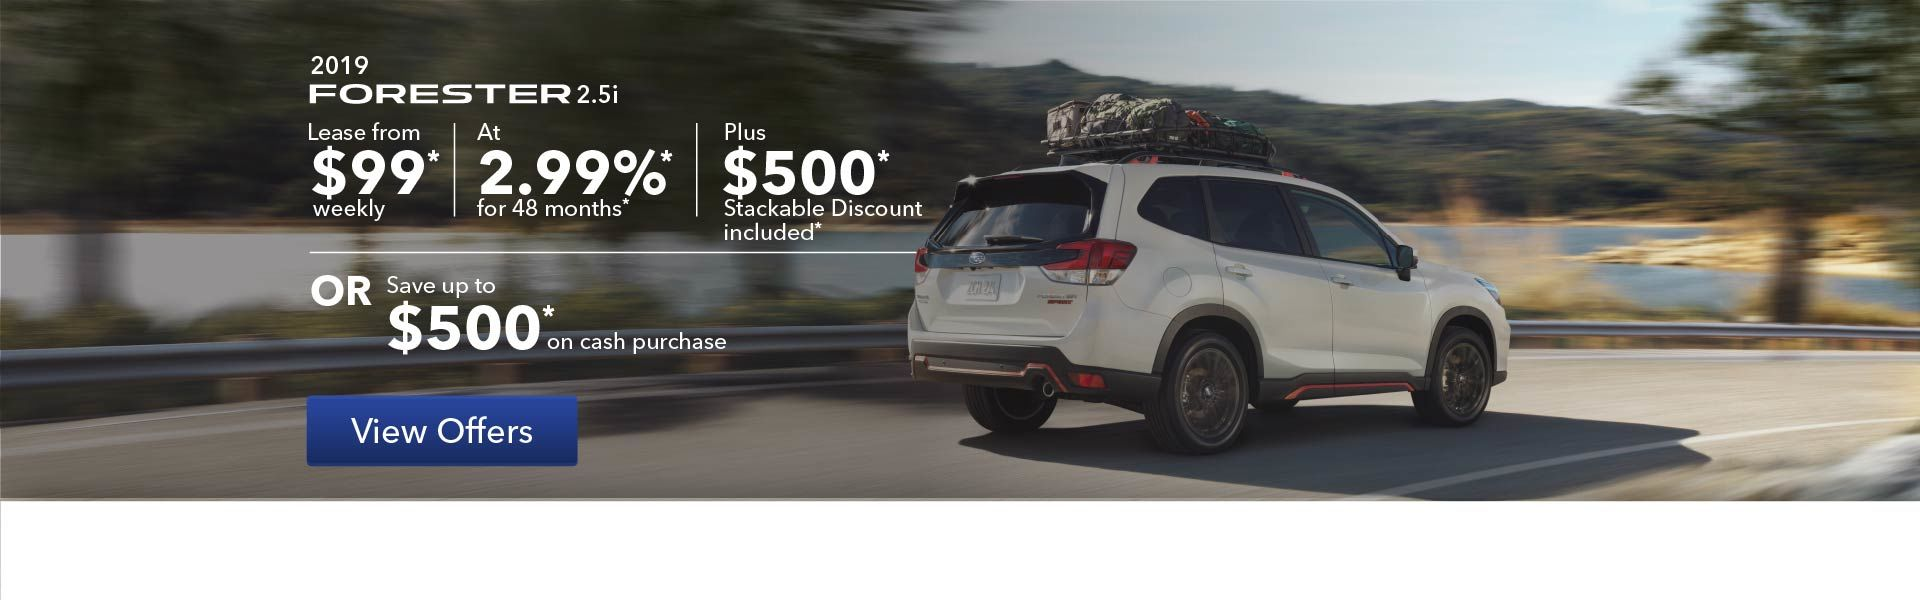 2019 Forester Promotion